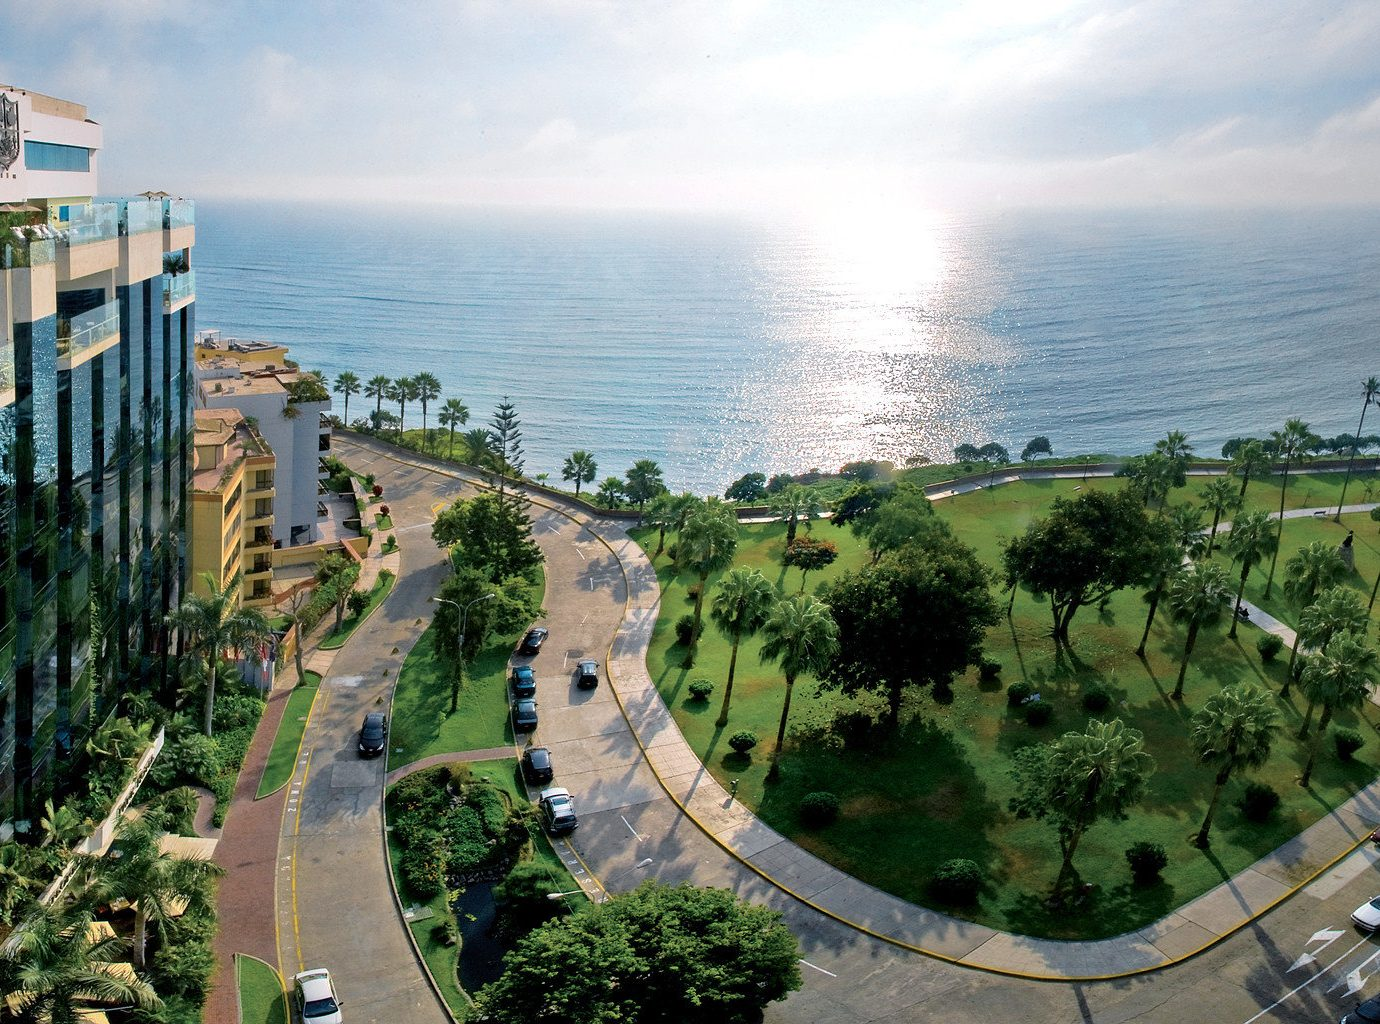 Boutique Hotels Hotels outdoor Town Coast aerial photography residential area waterway cityscape Sea overlooking